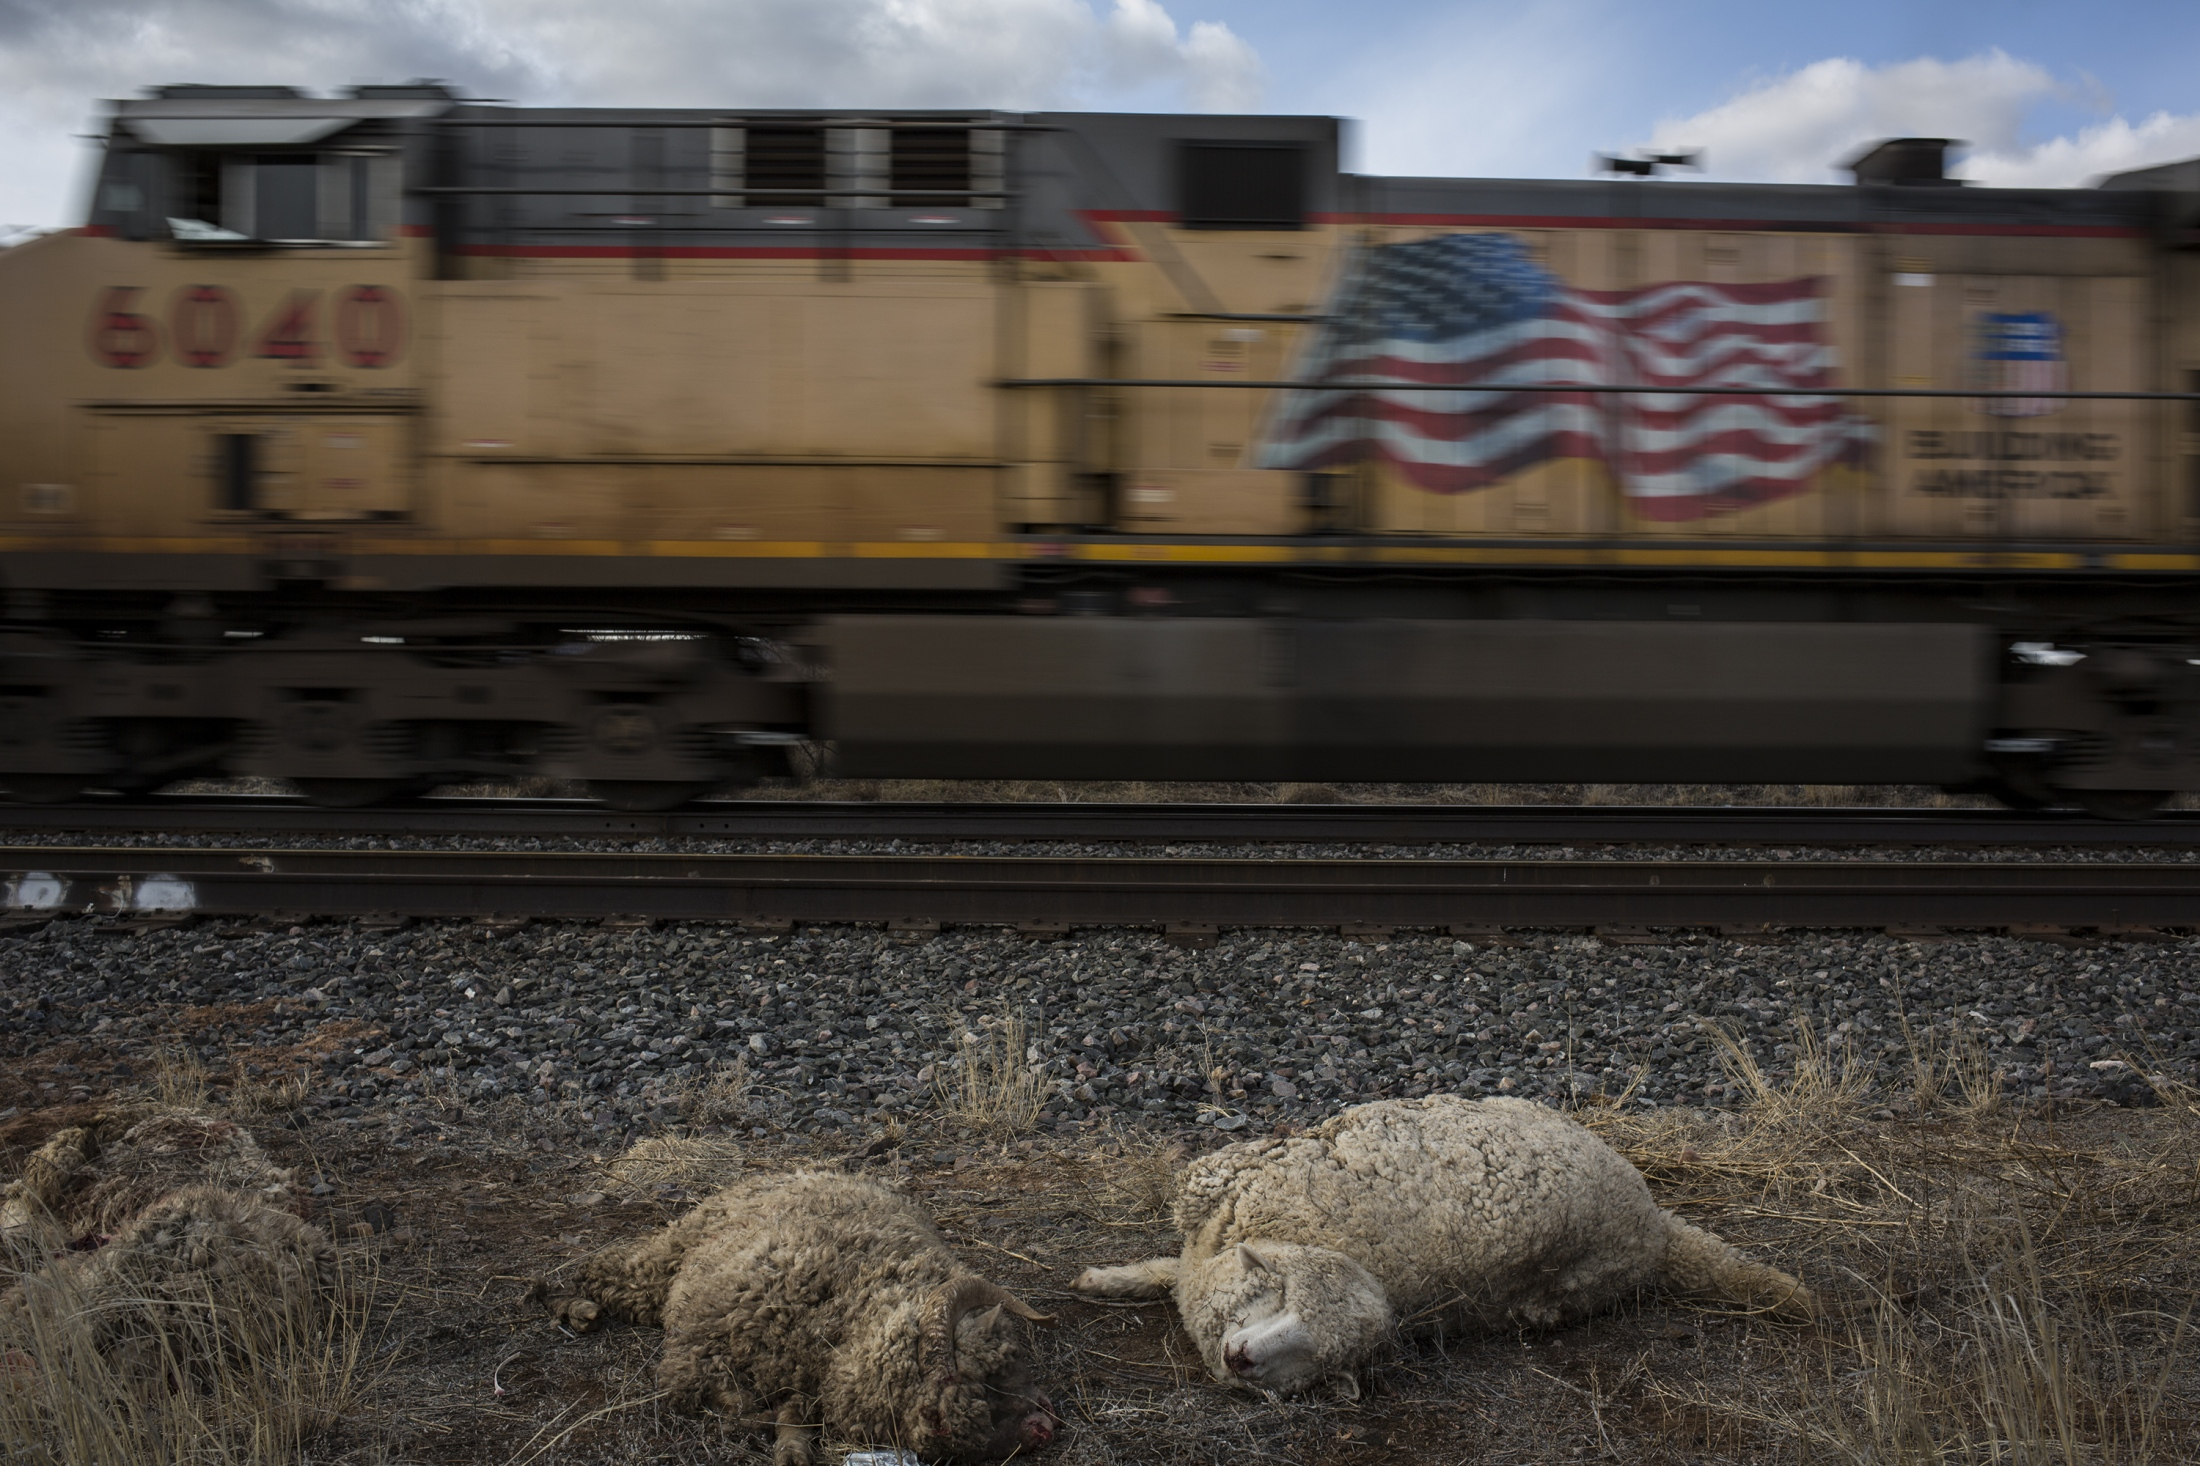 Dead sheep lay next to the rail road in the village of Pastura, just south of Santa Rosa, as a train passes by. Seven sheep were hit by another train that passed through.